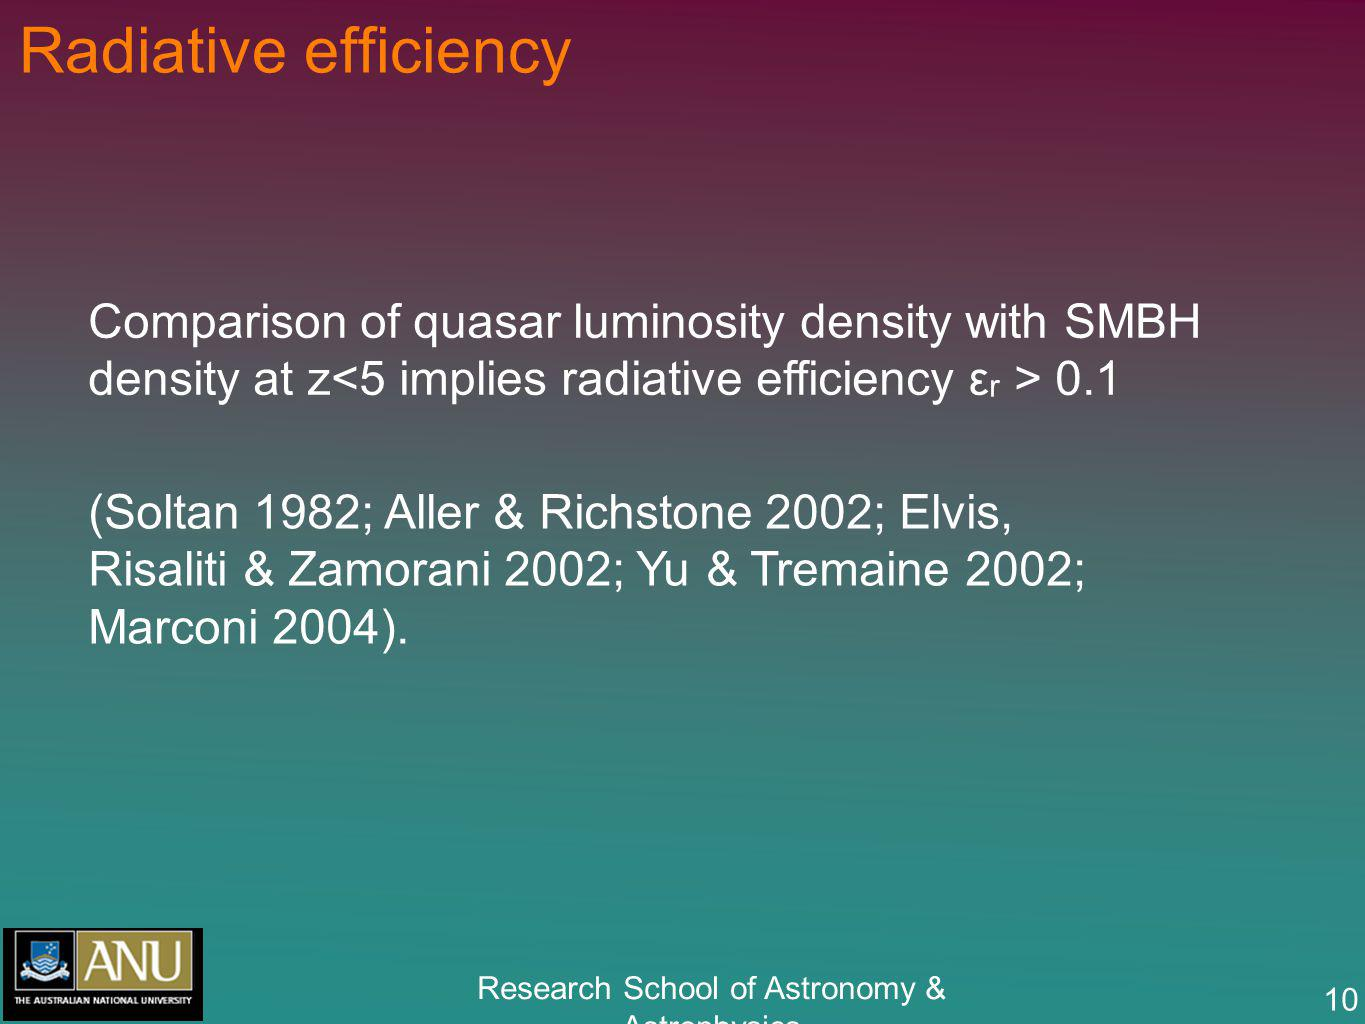 Research School of Astronomy & Astrophysics 10 Radiative efficiency Comparison of quasar luminosity density with SMBH density at z 0.1 (Soltan 1982; A